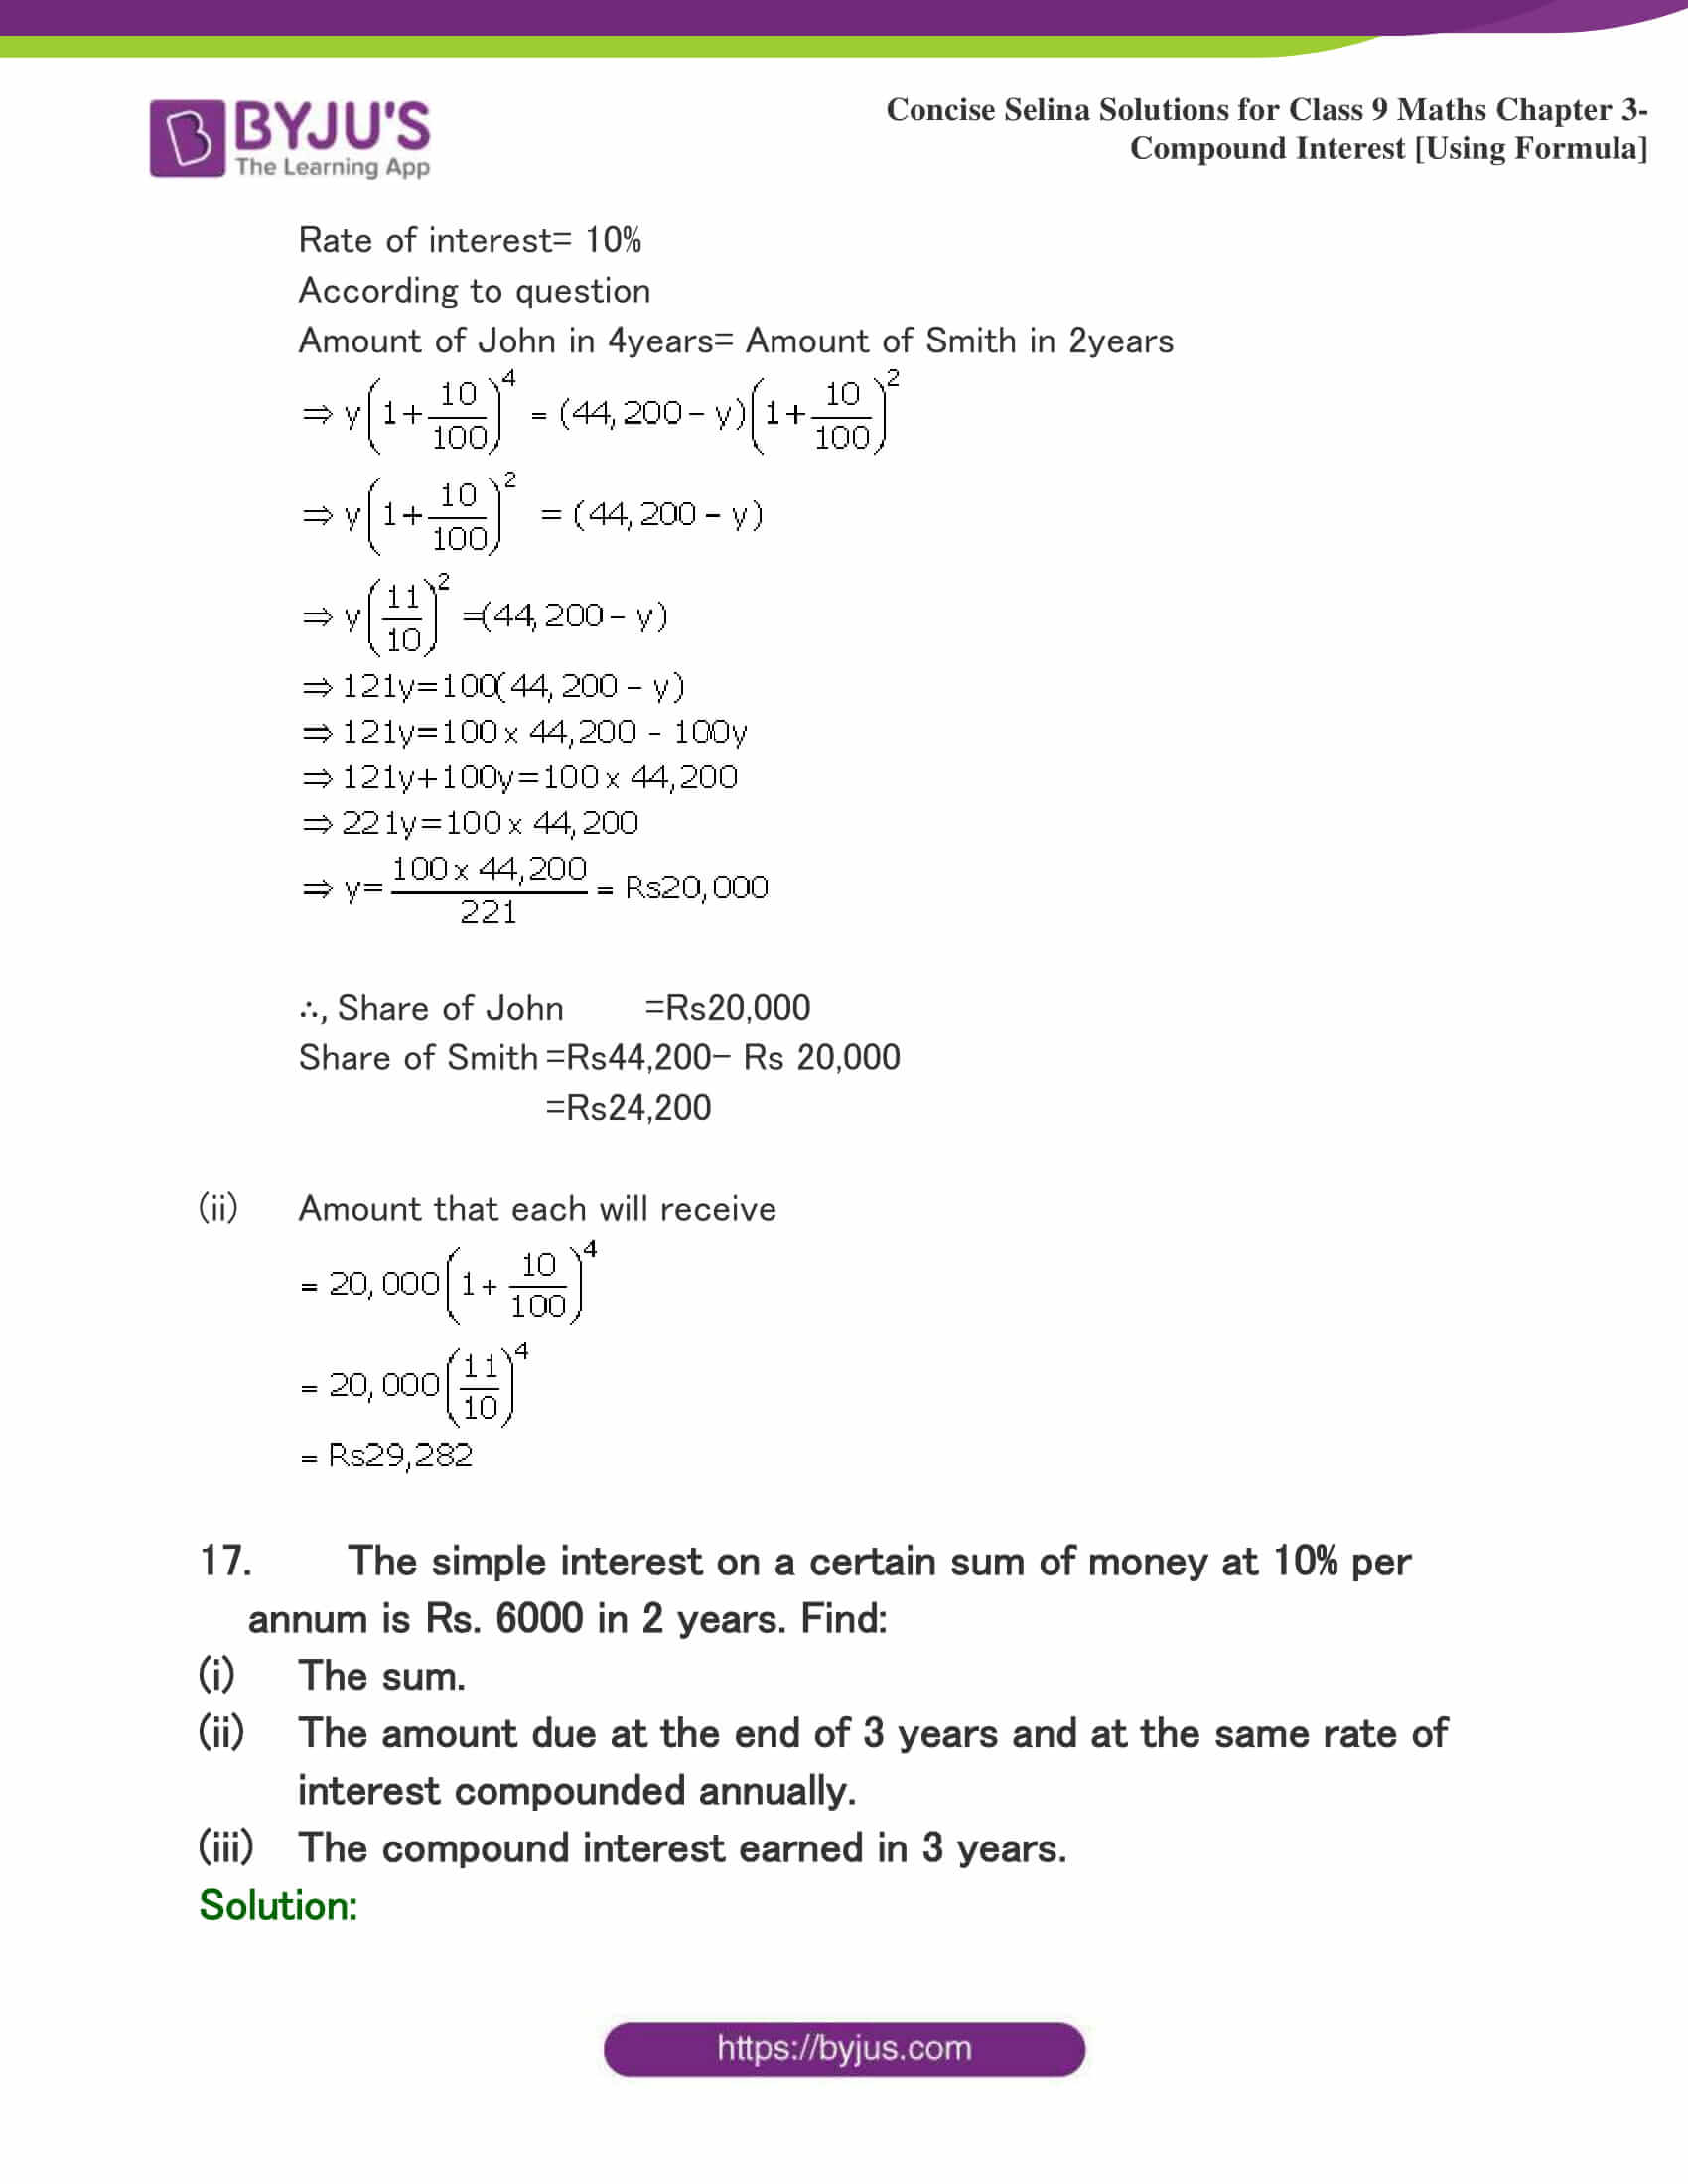 Selina Solutions Class 9 Maths Chapter 3 Compound Interest Using Formula part 10